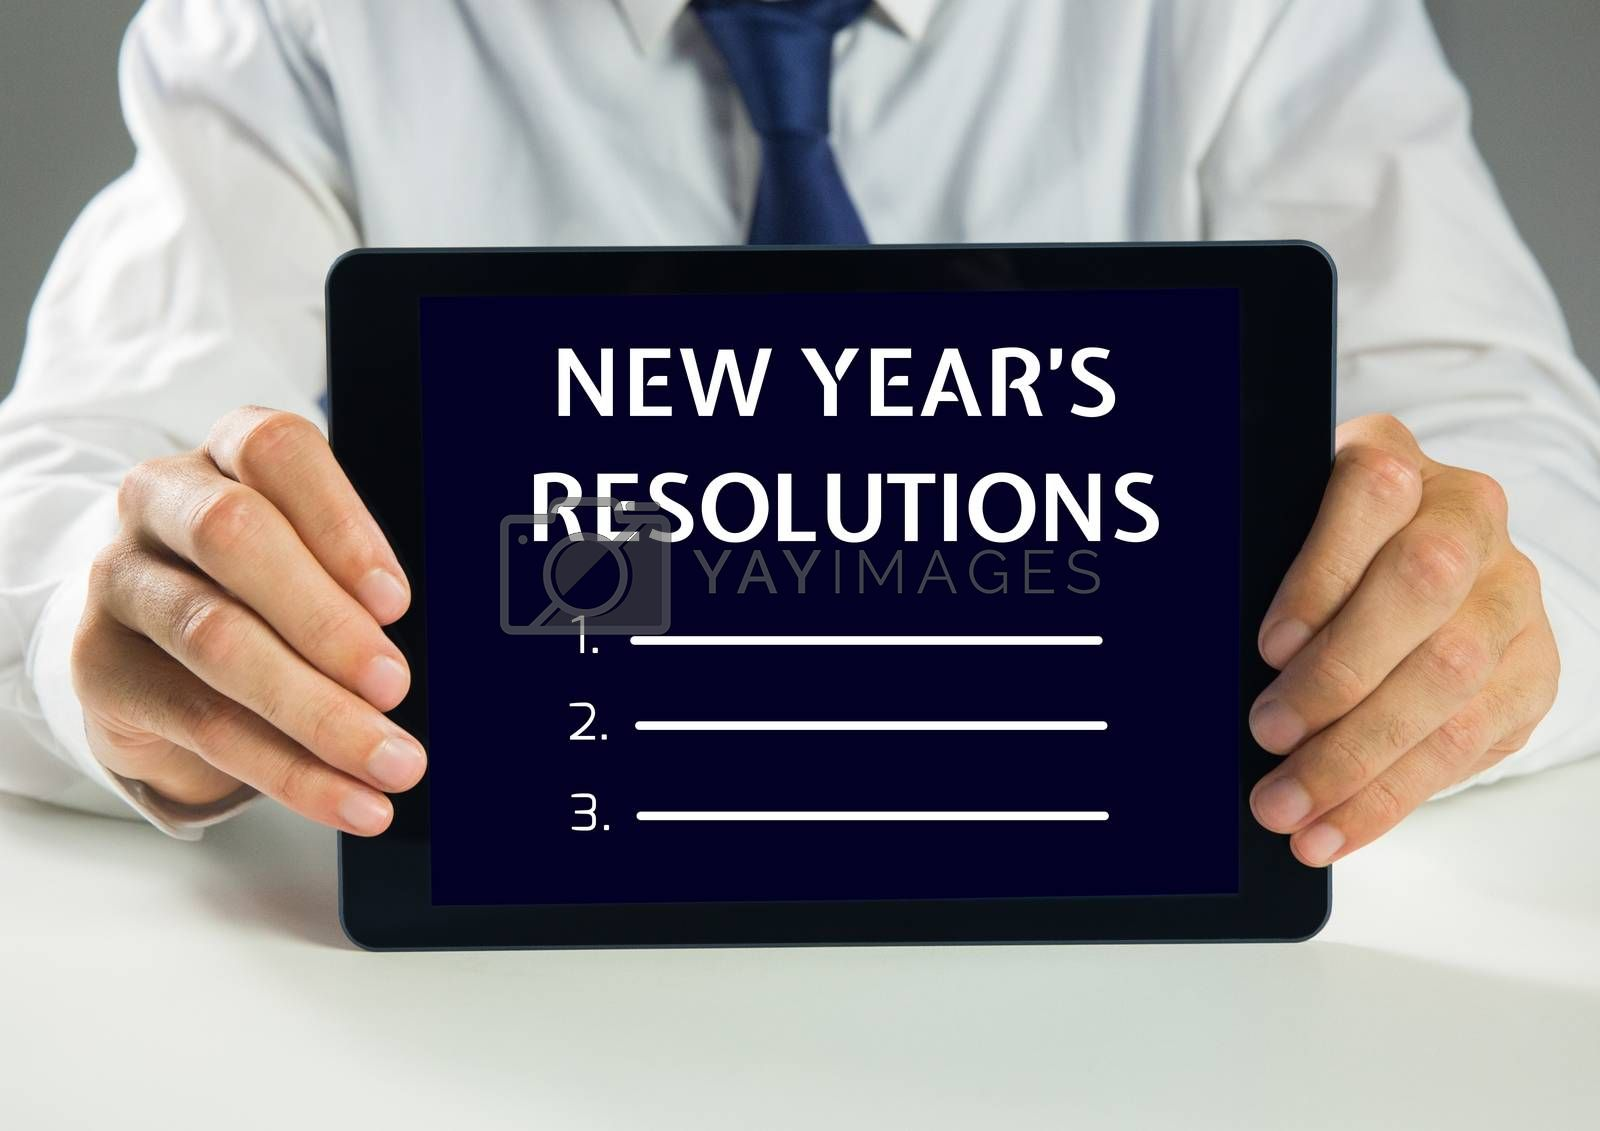 Man holding a digital tablet showing list of new year resolution goals